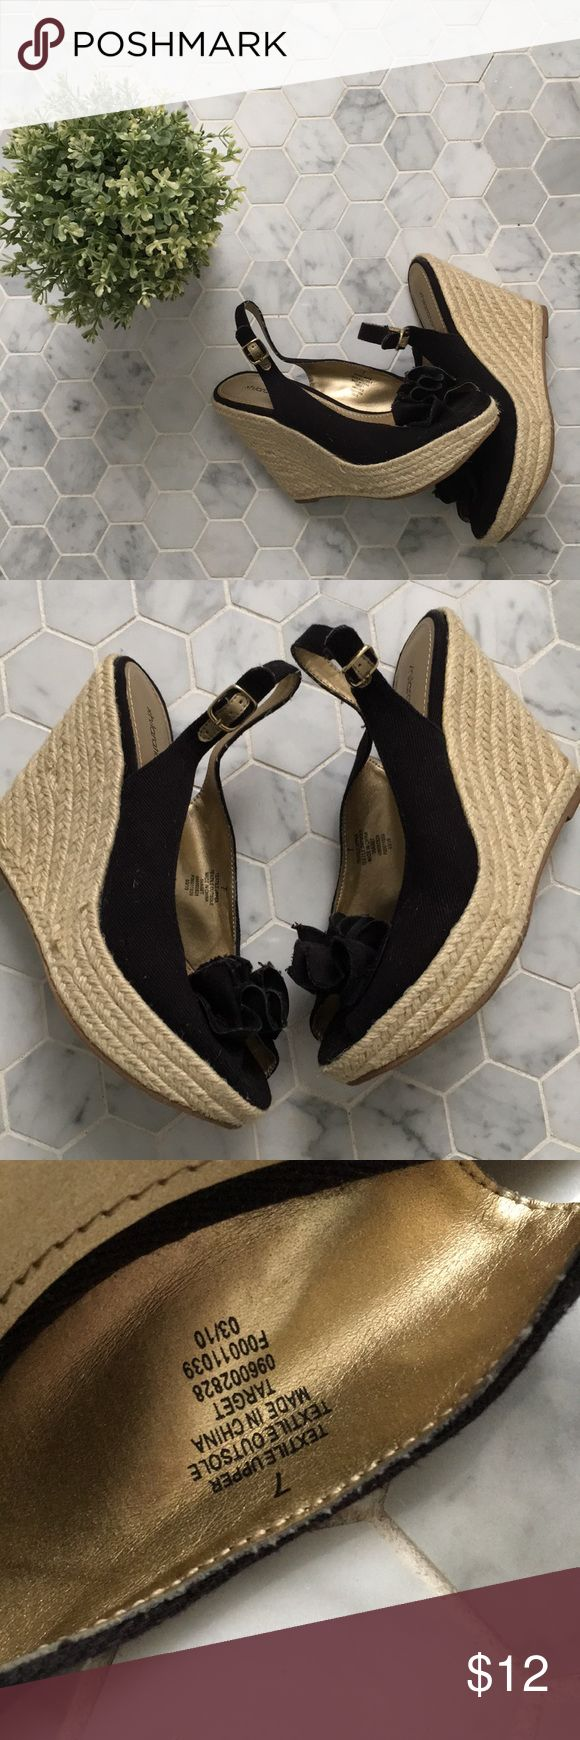 Black Espadrilles with flower detail Pre-loved black espadrilles with gold insoles, adjustable closure, flower detail. Inside of left sandal has factory defect where you can see glue. Since it's on the inside it never bothered me. Xhilaration Shoes Espadrilles